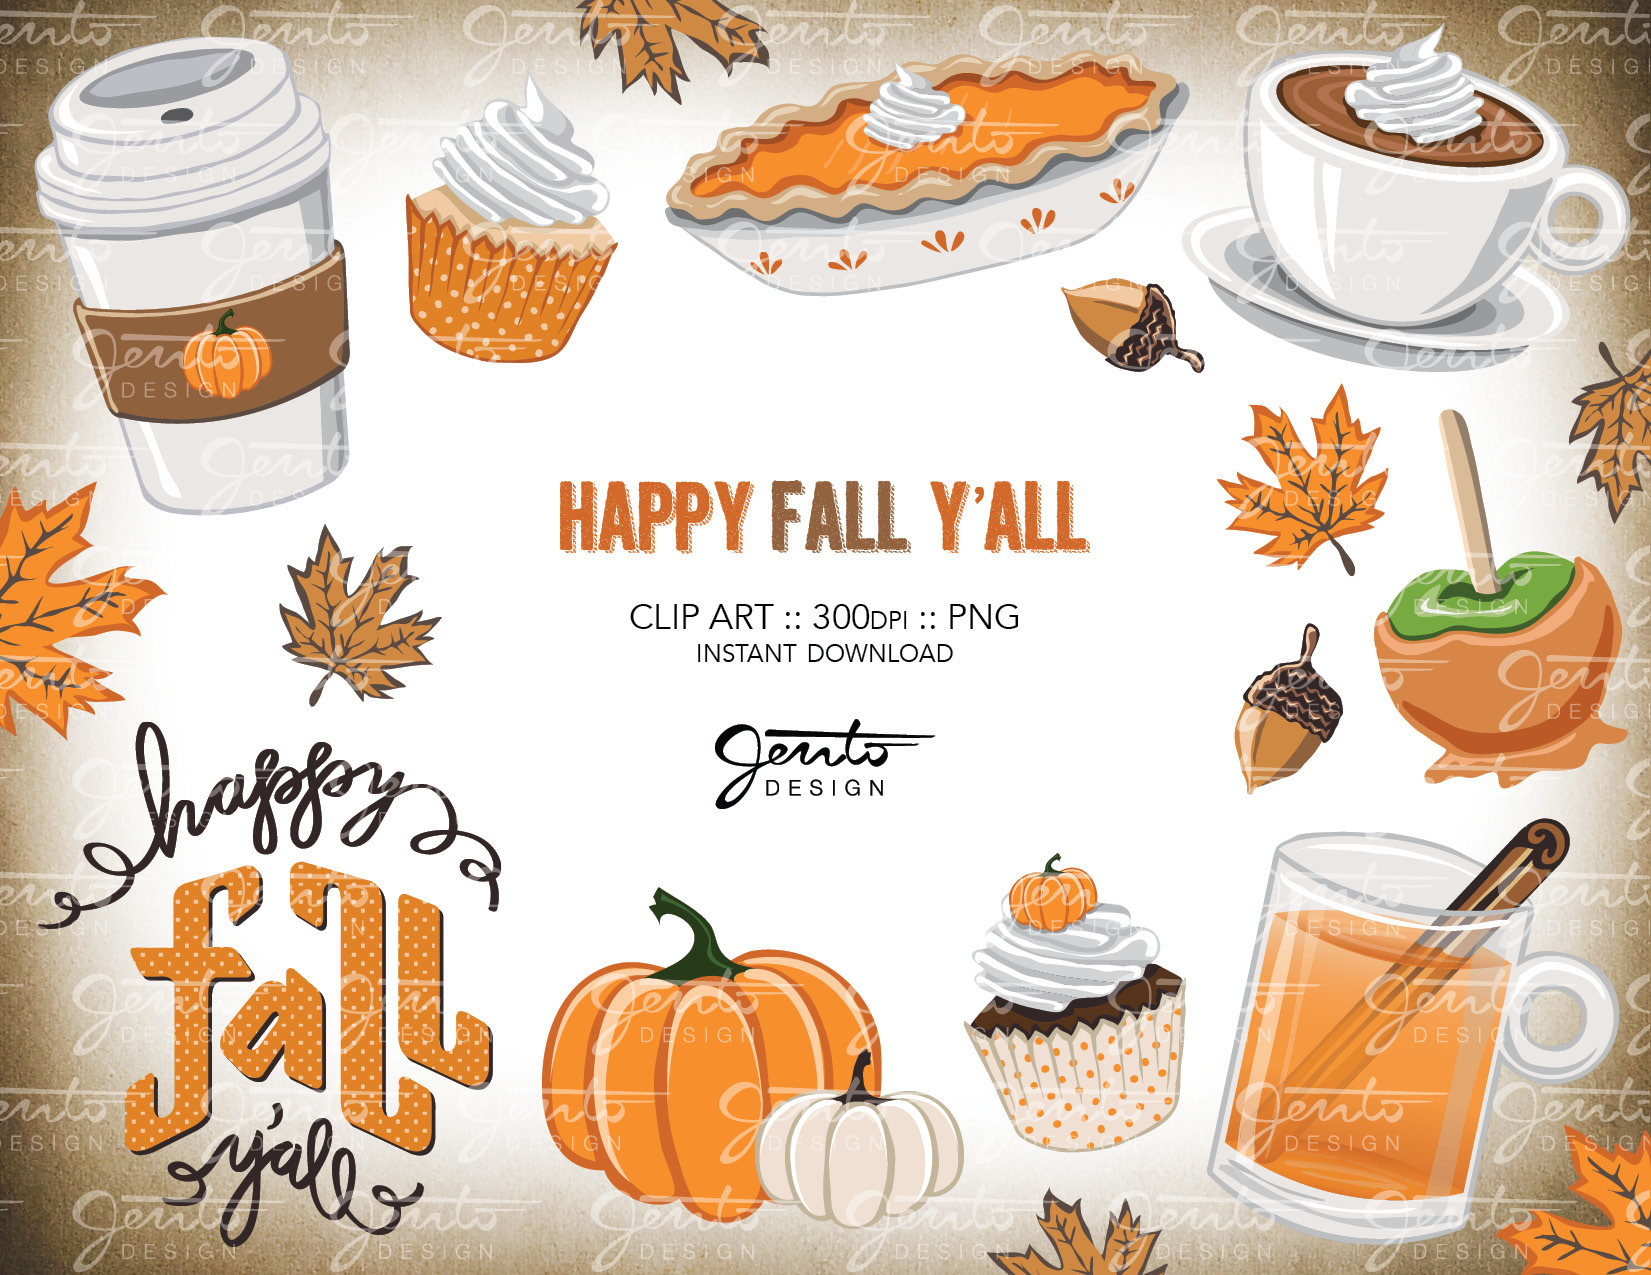 Happy Fall Y'all Clip Art Fall Favorites Pumpkin Spice